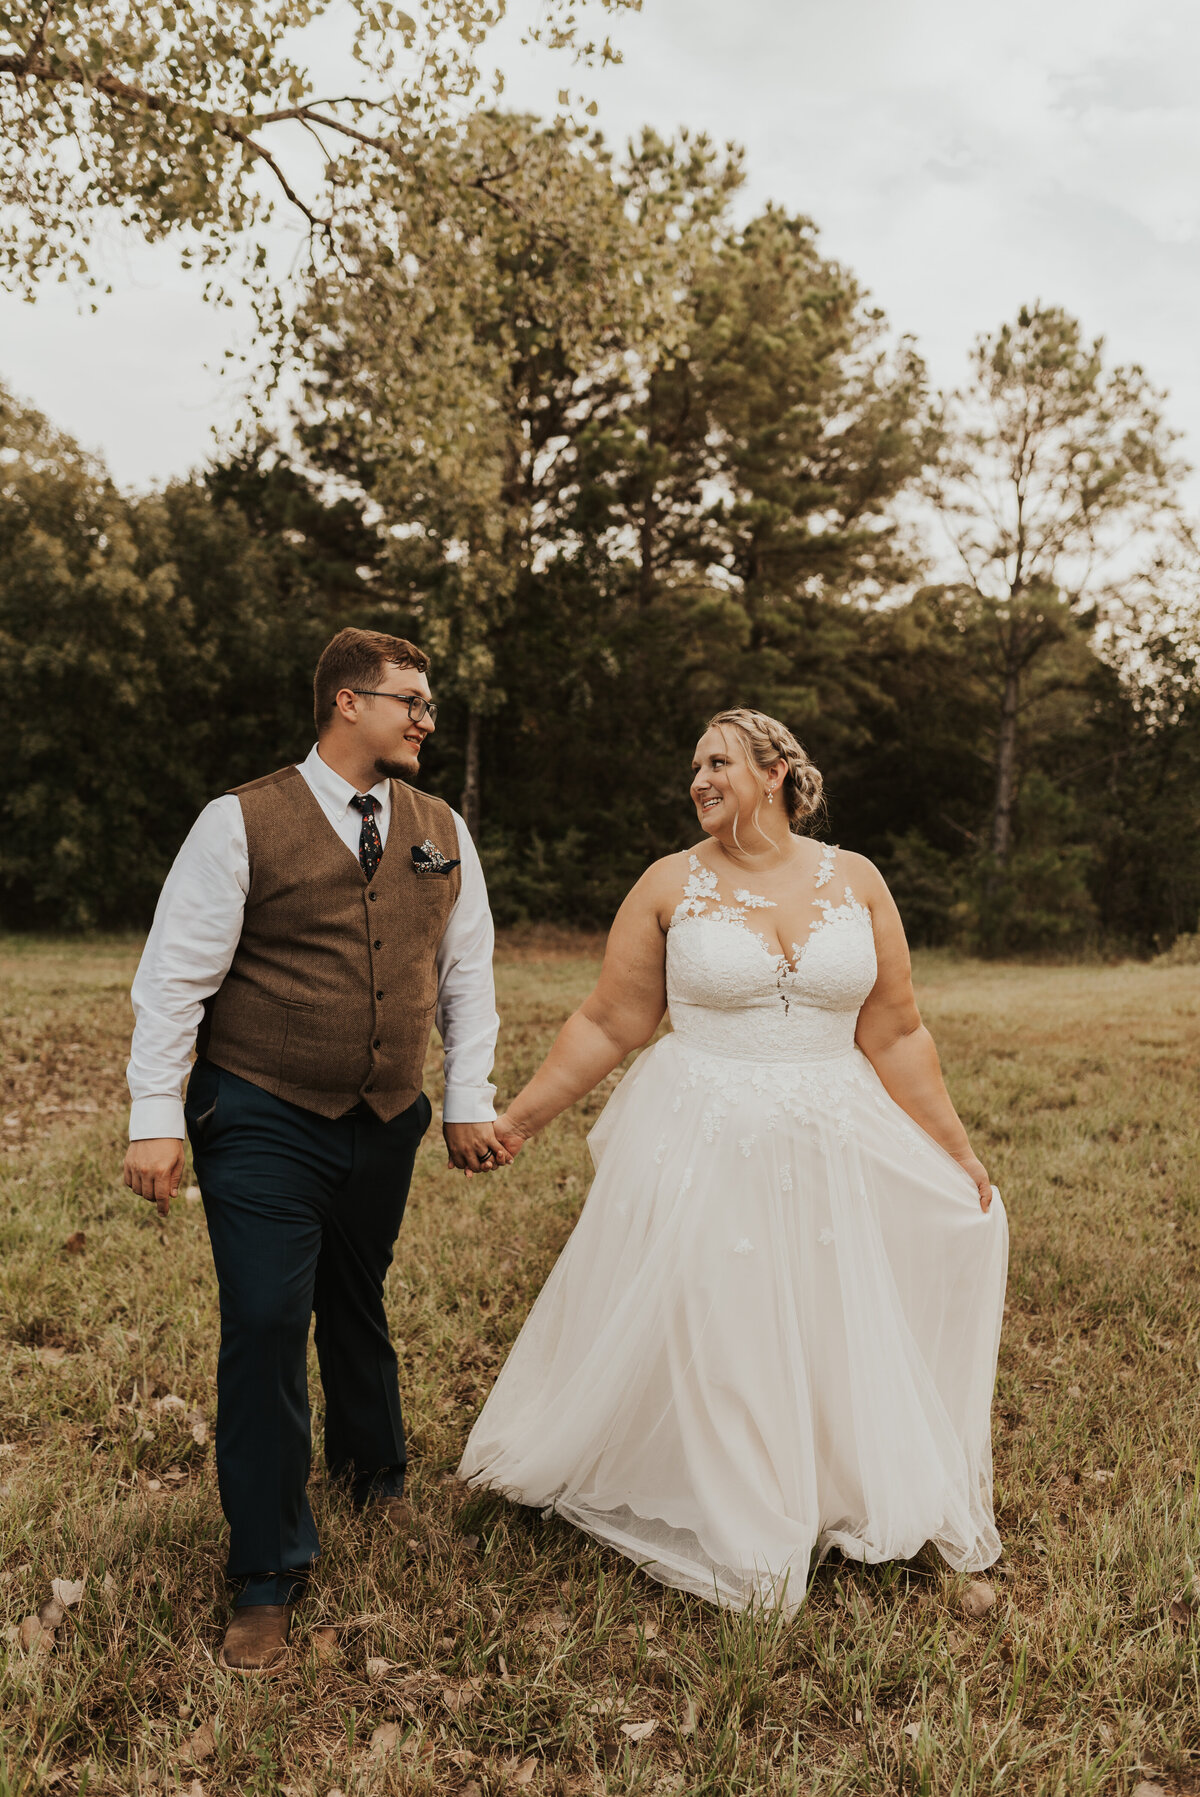 The-Hales-wedding-smithville-texas-by-bruna-kitchen-photography-37